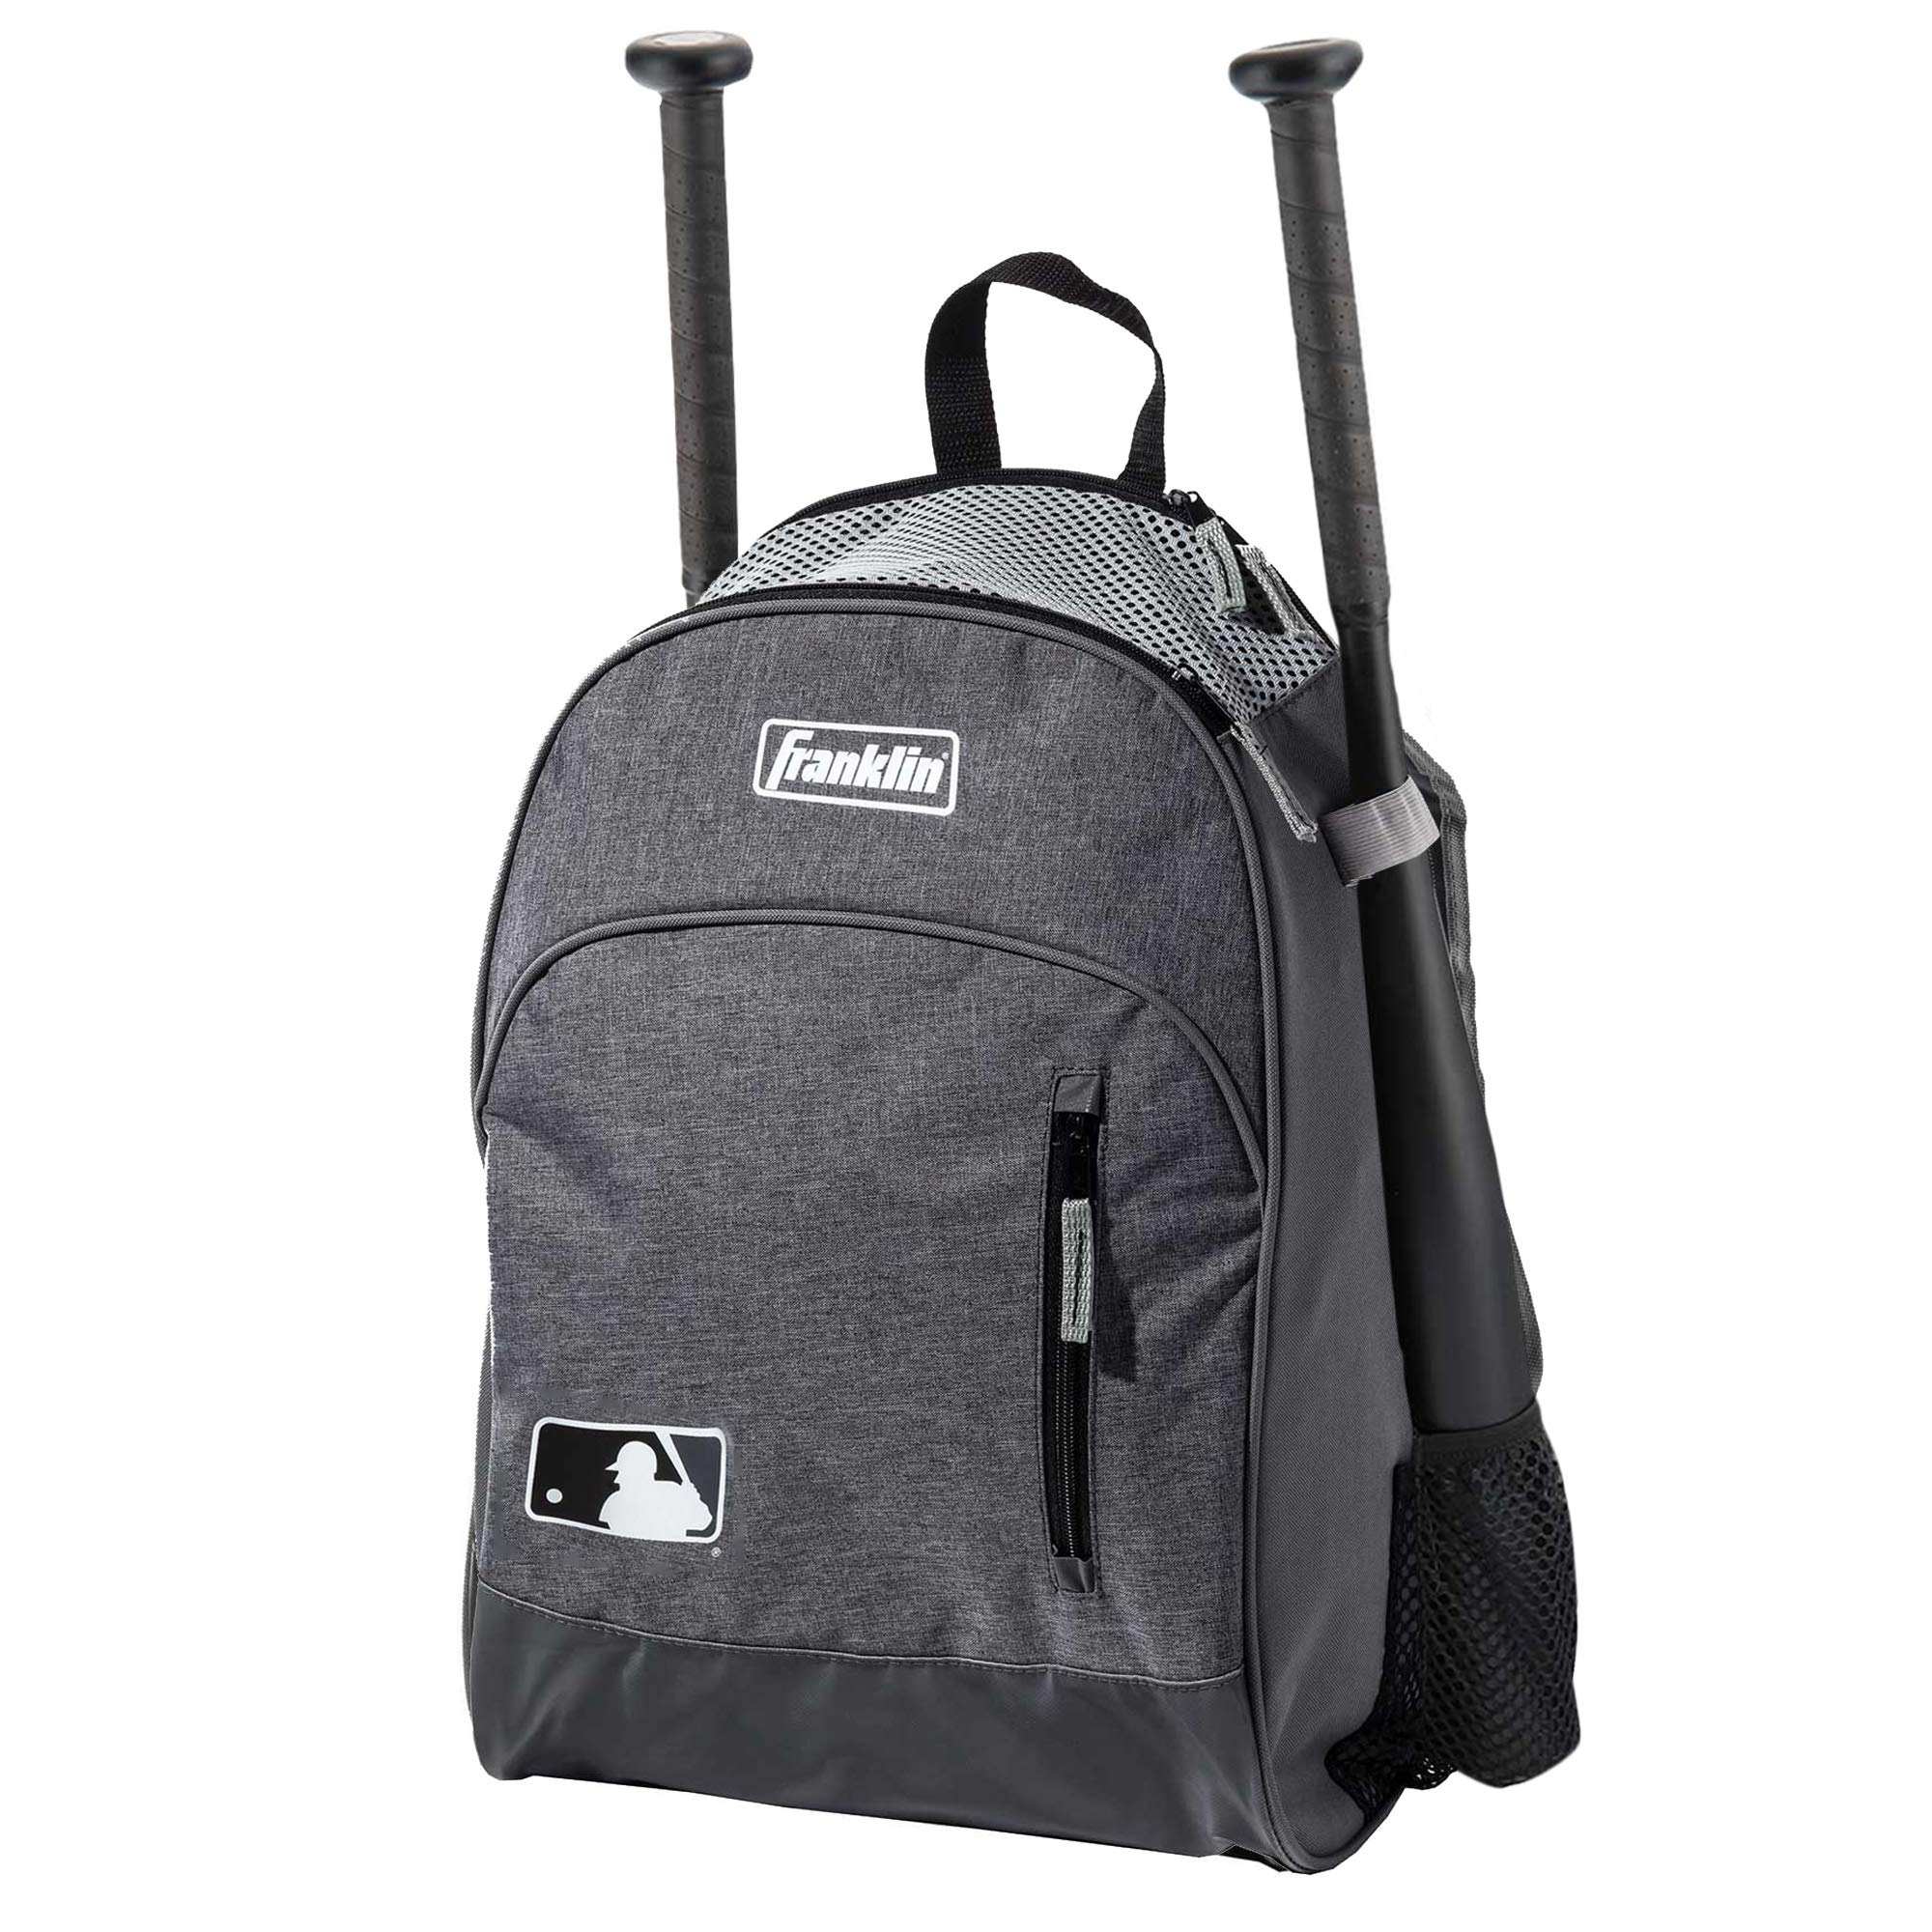 Franklin Sports MLB Batpack Bag - Youth Baseball, Softball and Teeball Bag - Equipment Bag For Sports - Bag Holds Bats (2) and Includes Fence Hook - Heather Grey by Franklin Sports